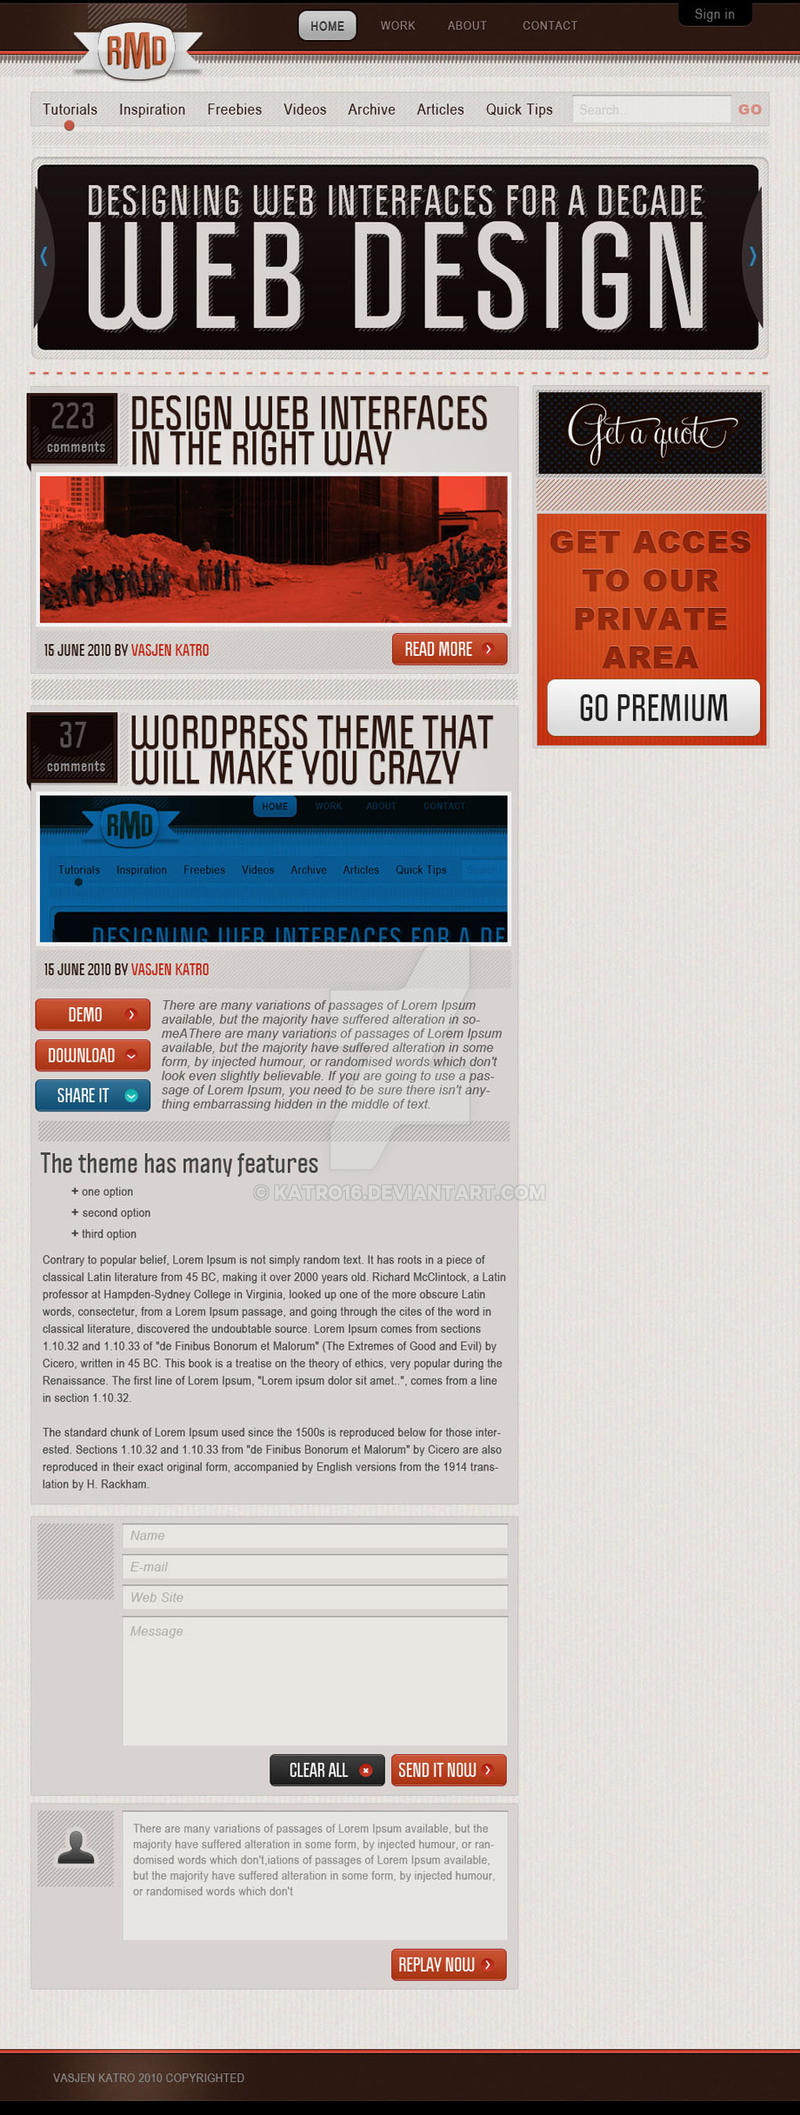 RMD WordPress Theme by Katro16